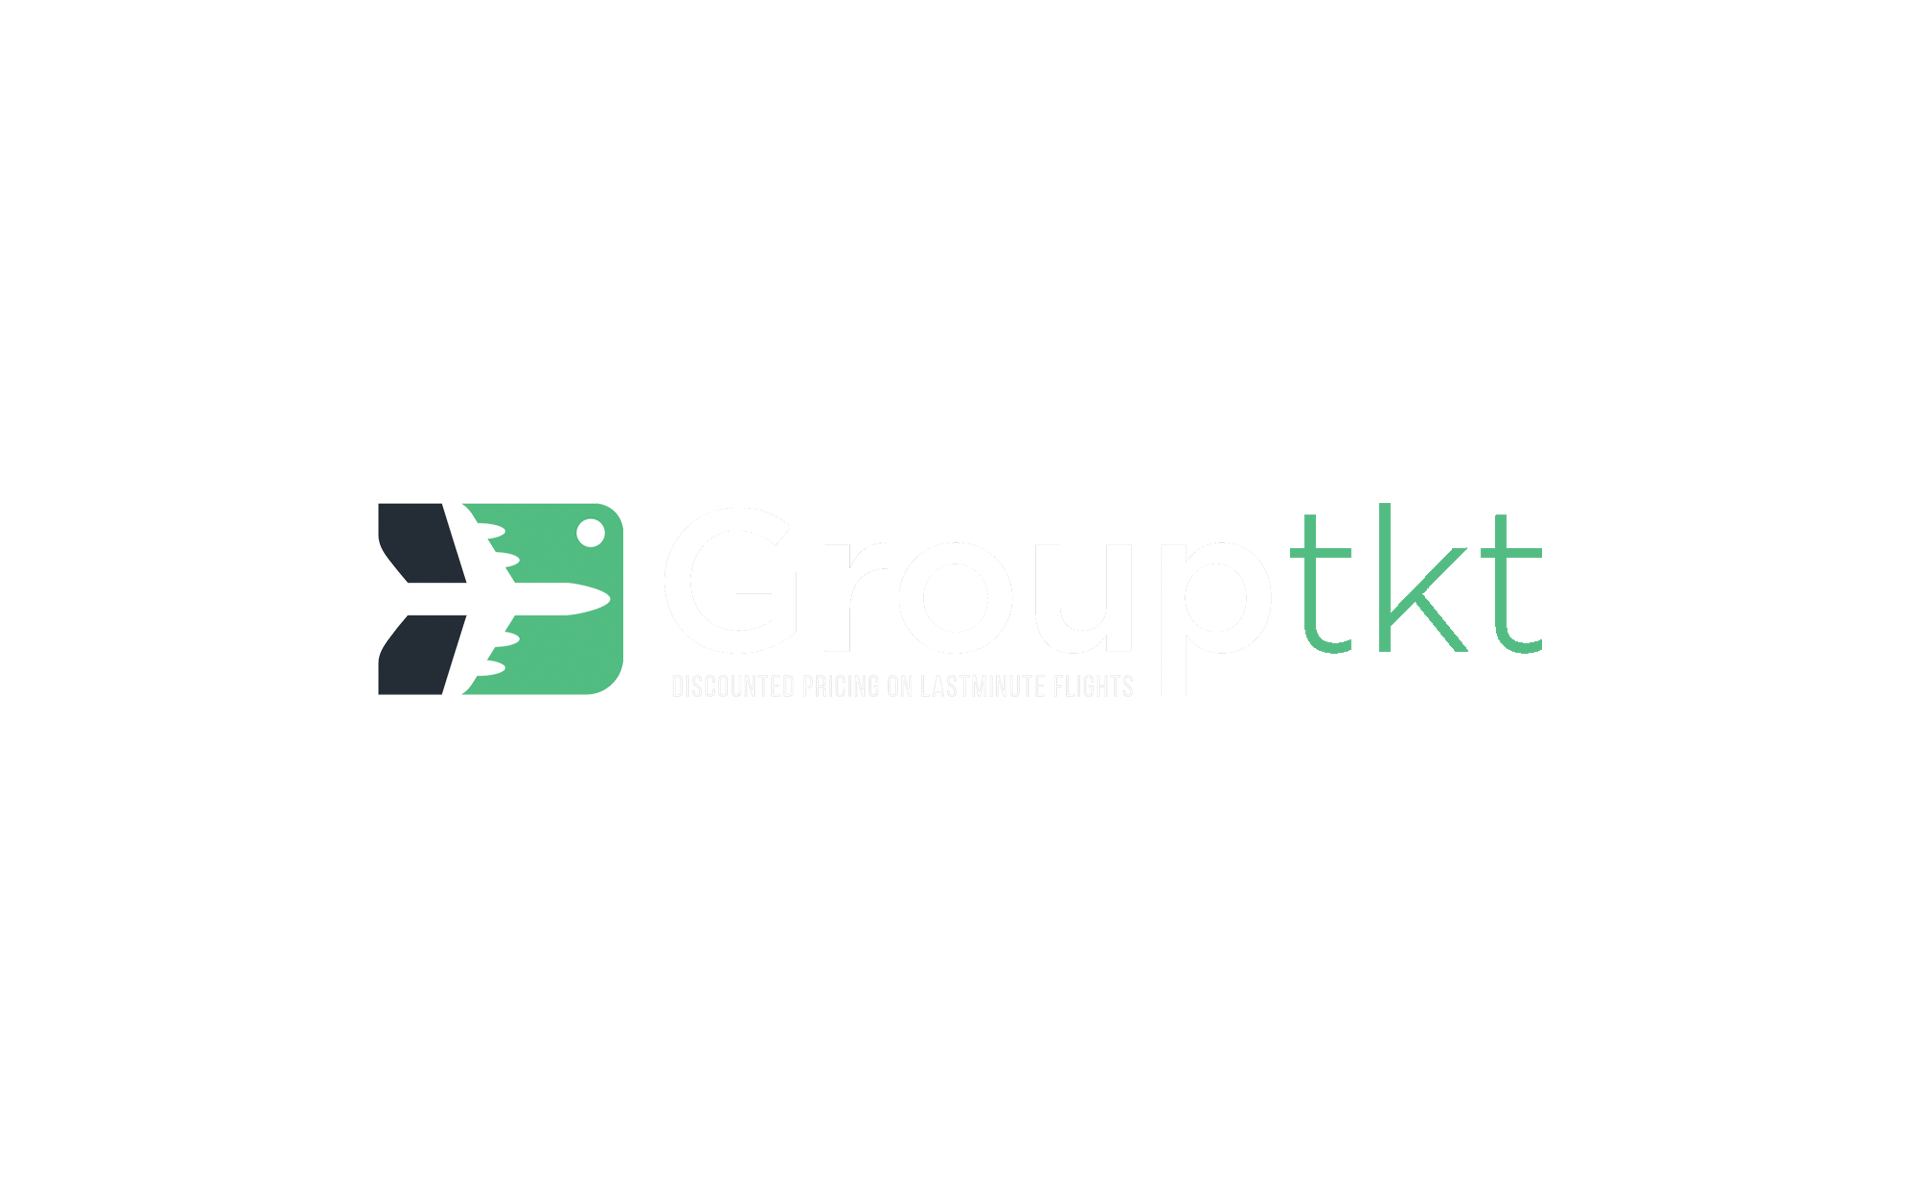 Webzeee-GroupTicket